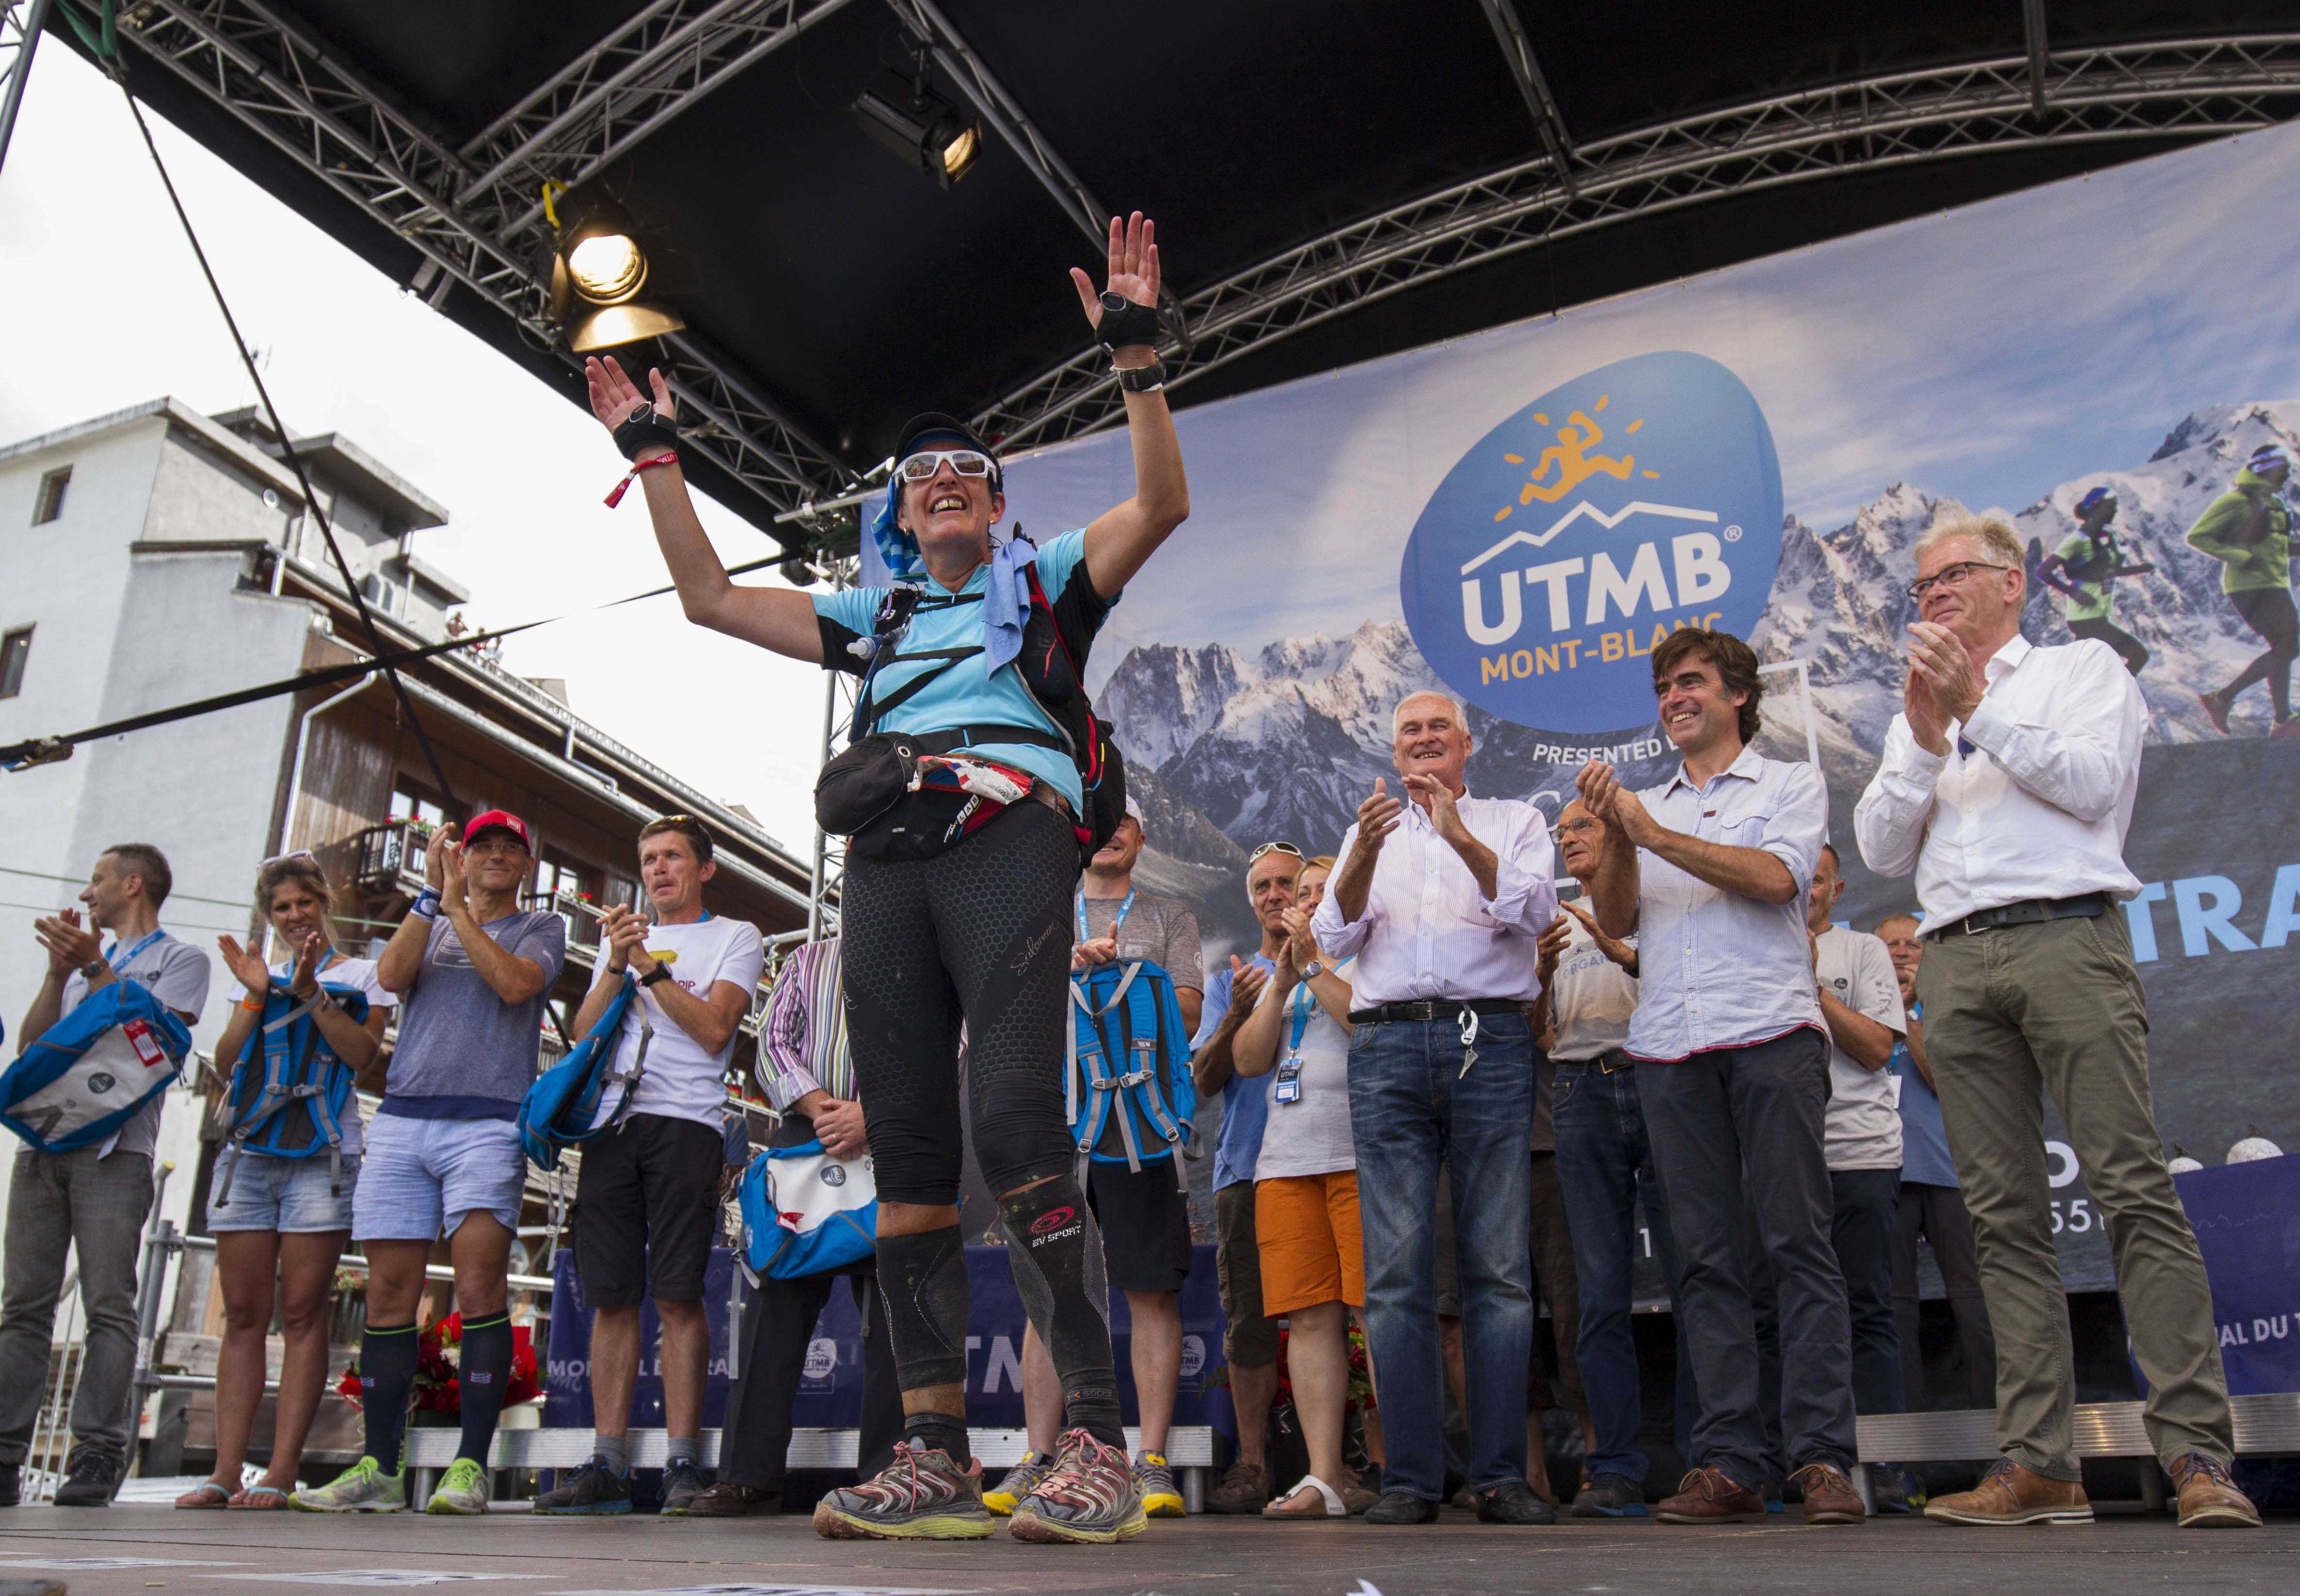 UTMB FINAL FINISHER ON STAGE. Photos by James Mackeddie